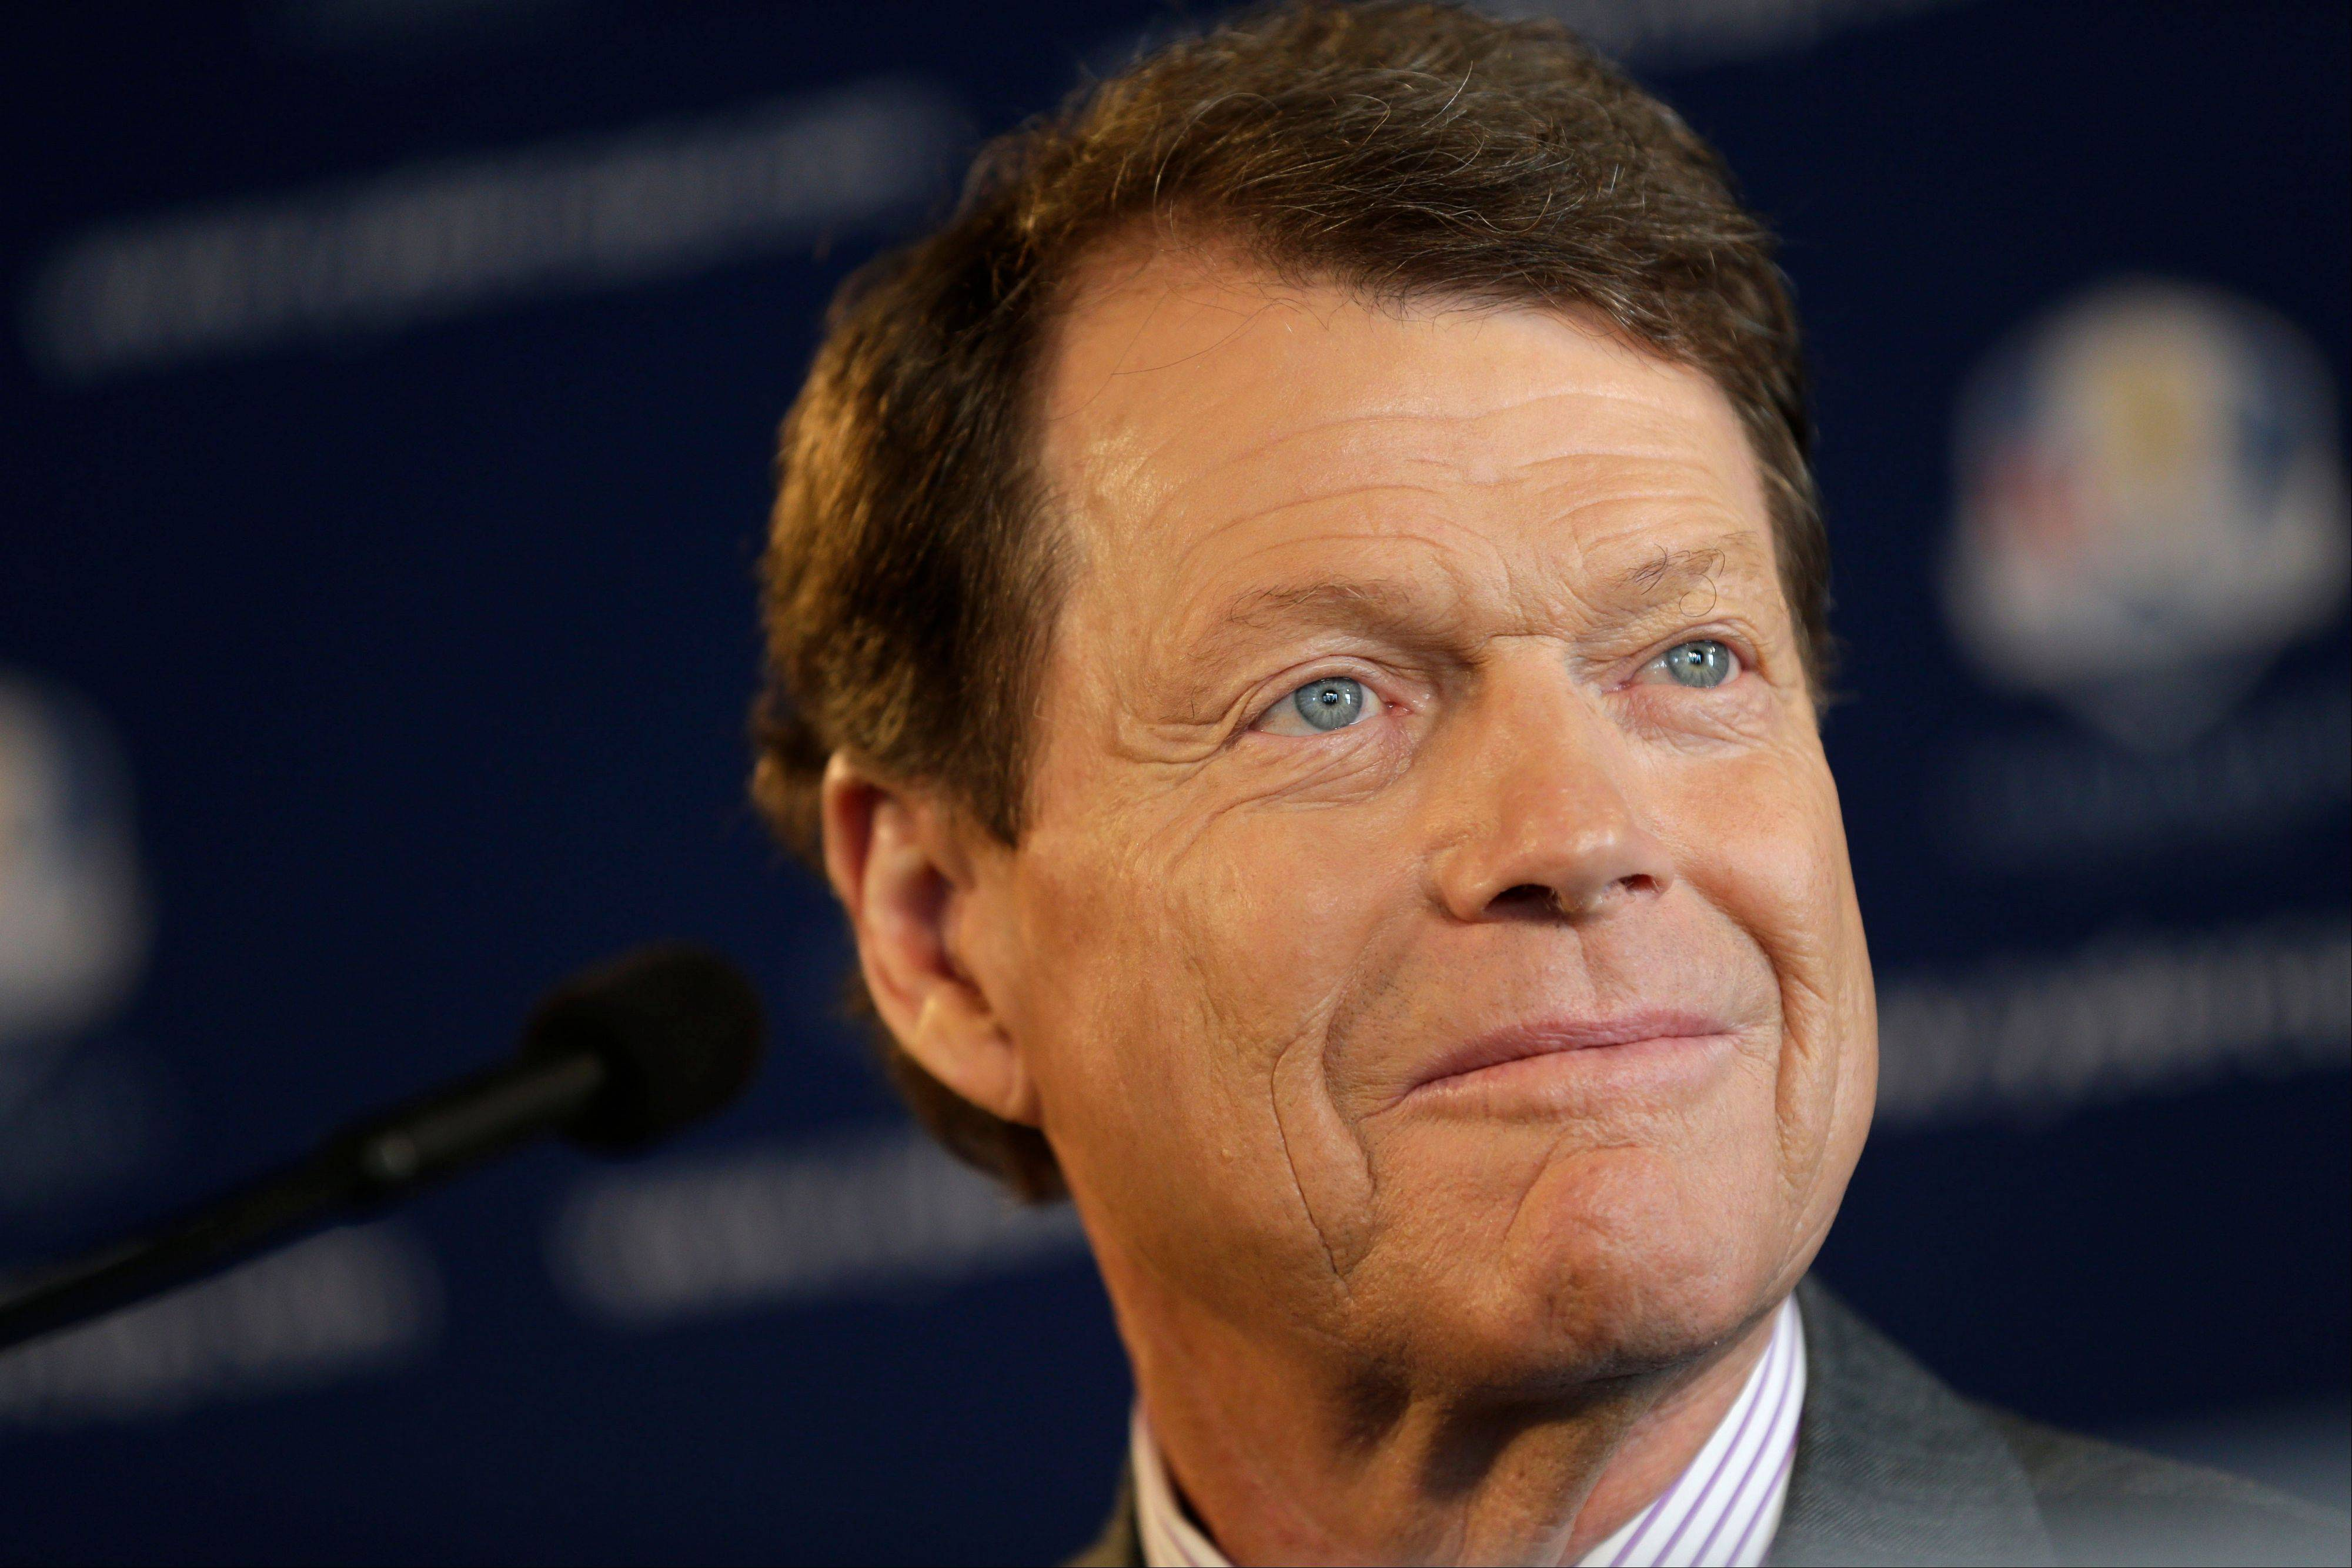 A year from now, Tom Watson and the U.S. Ryder Cup team will be competing in the 2014 tournament in Scotland, trying to win the coveted trophy they lost at Medinah.